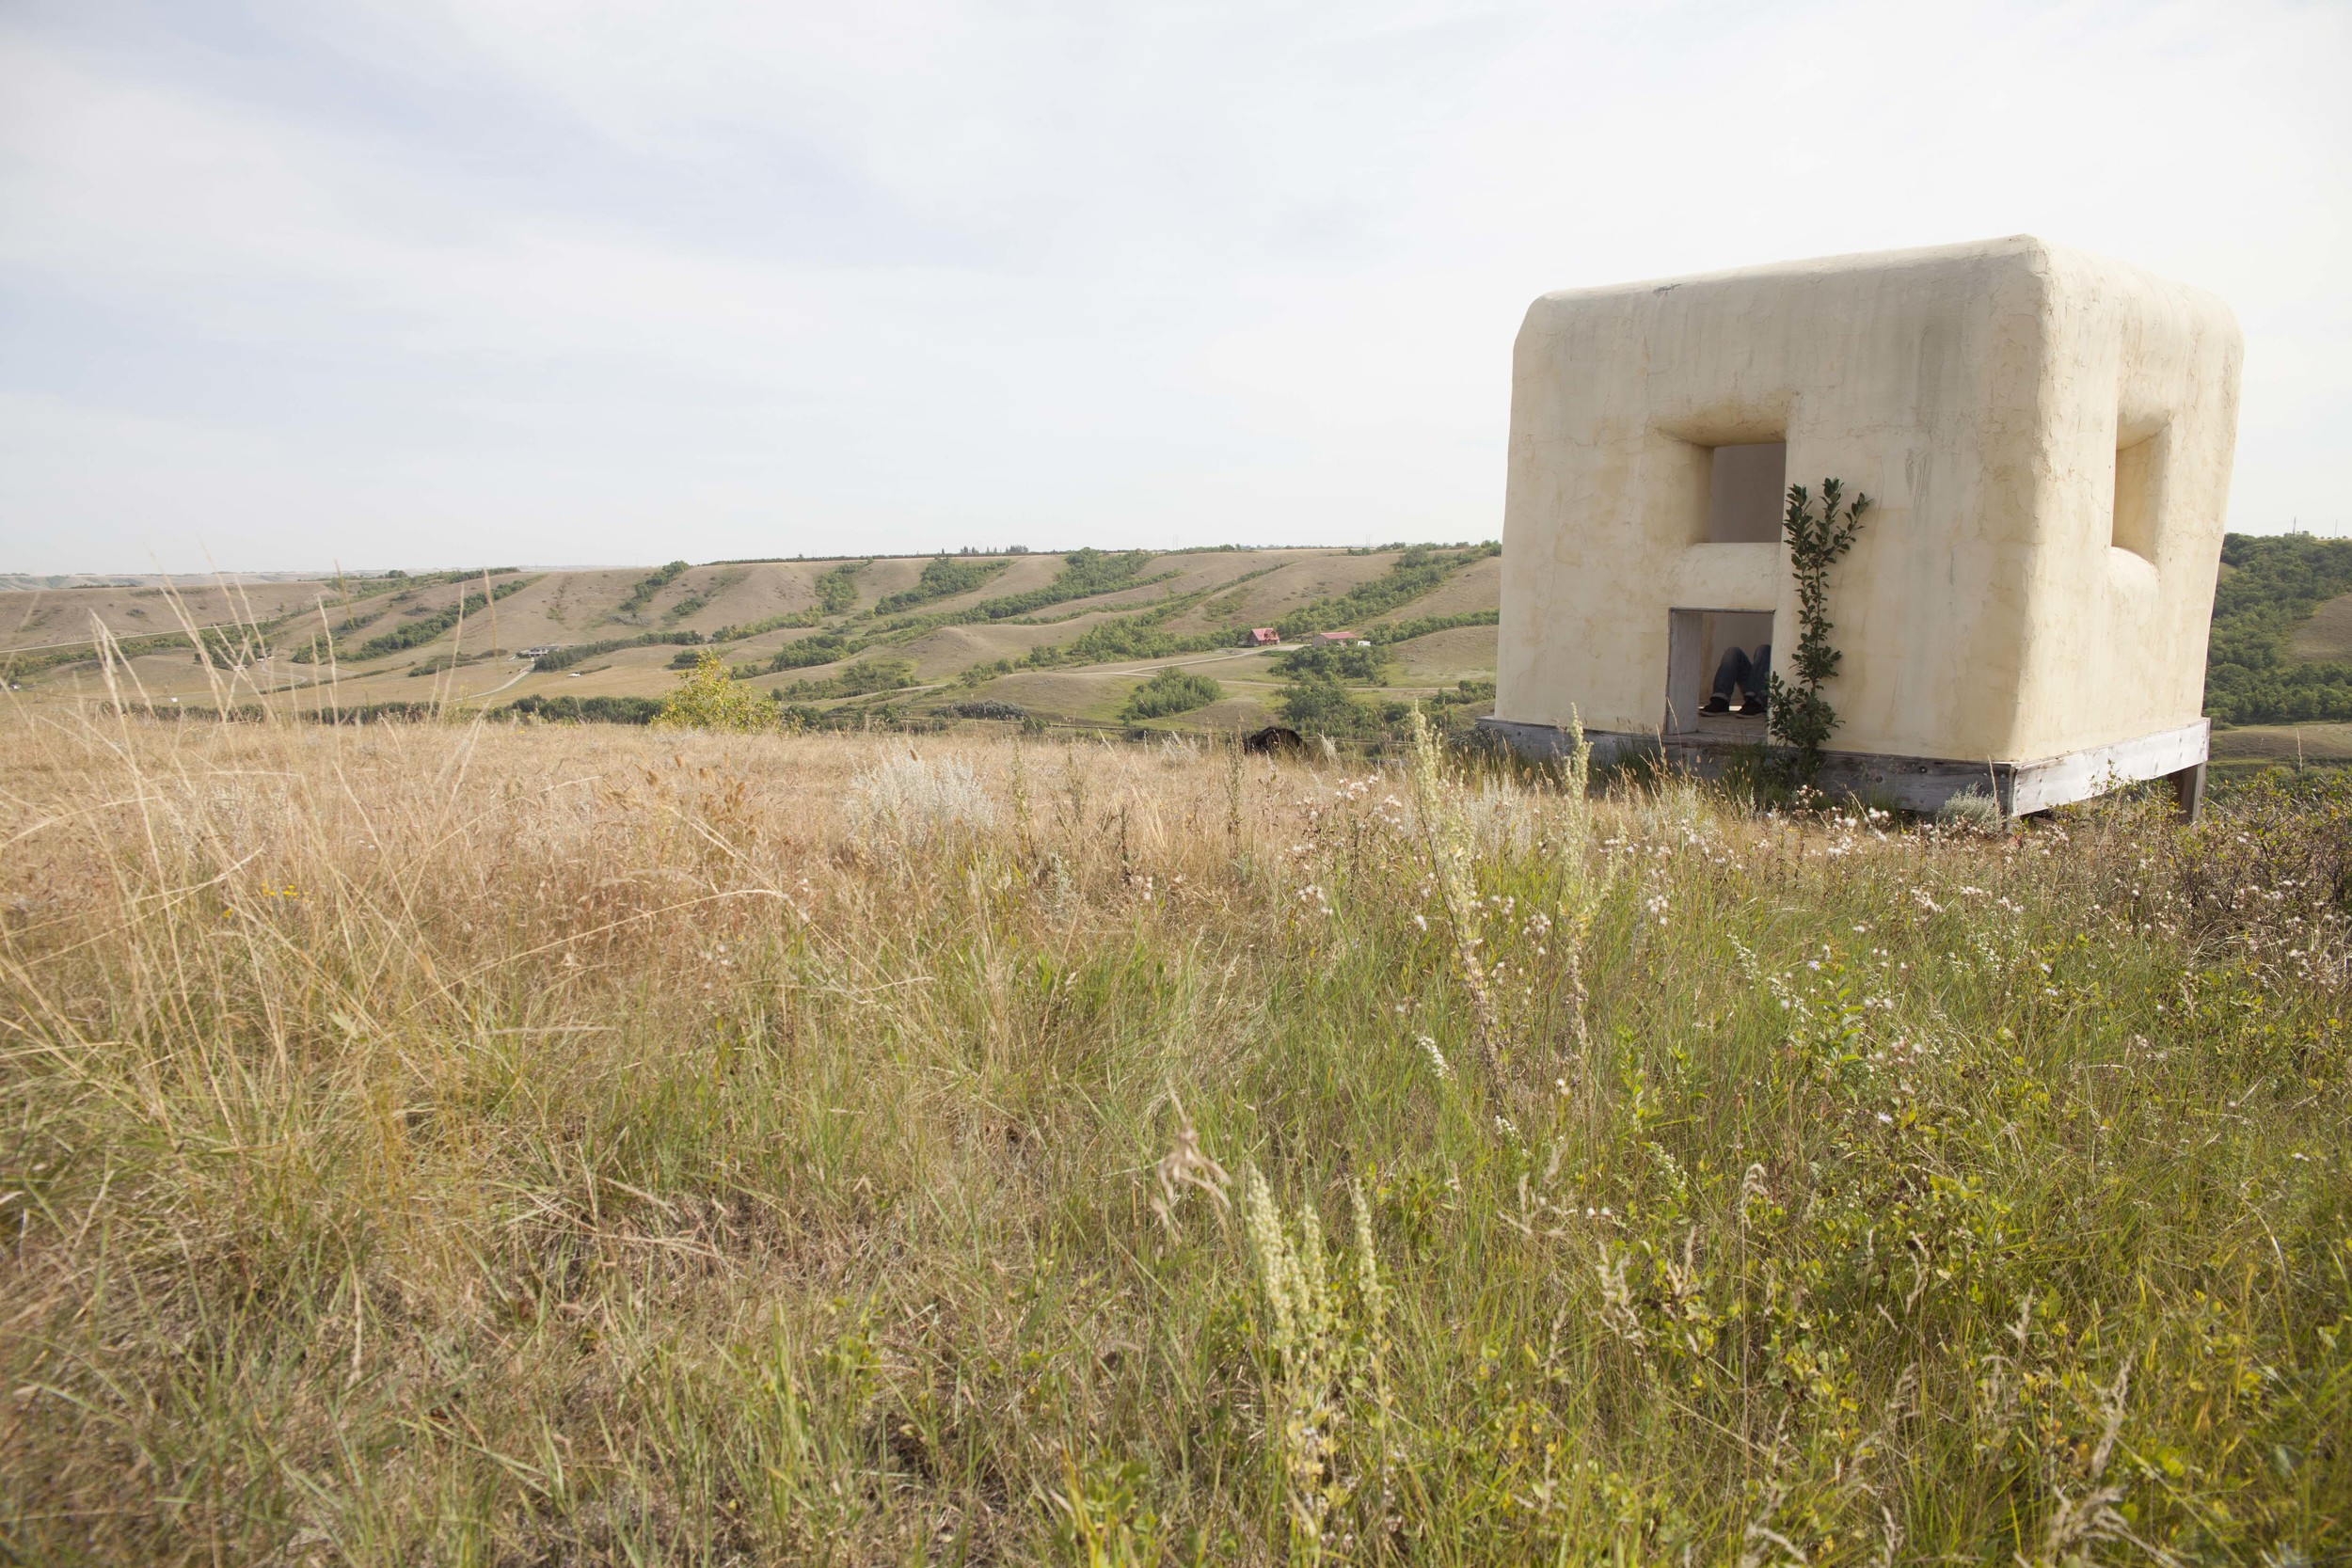 The Straw Bale Observatory (created by Dennis Evans) in the prairie of Saskatchewan, Canada, where Rick Moody listened to a cellist perform for him. Photograph by Ayden L.M. Grout